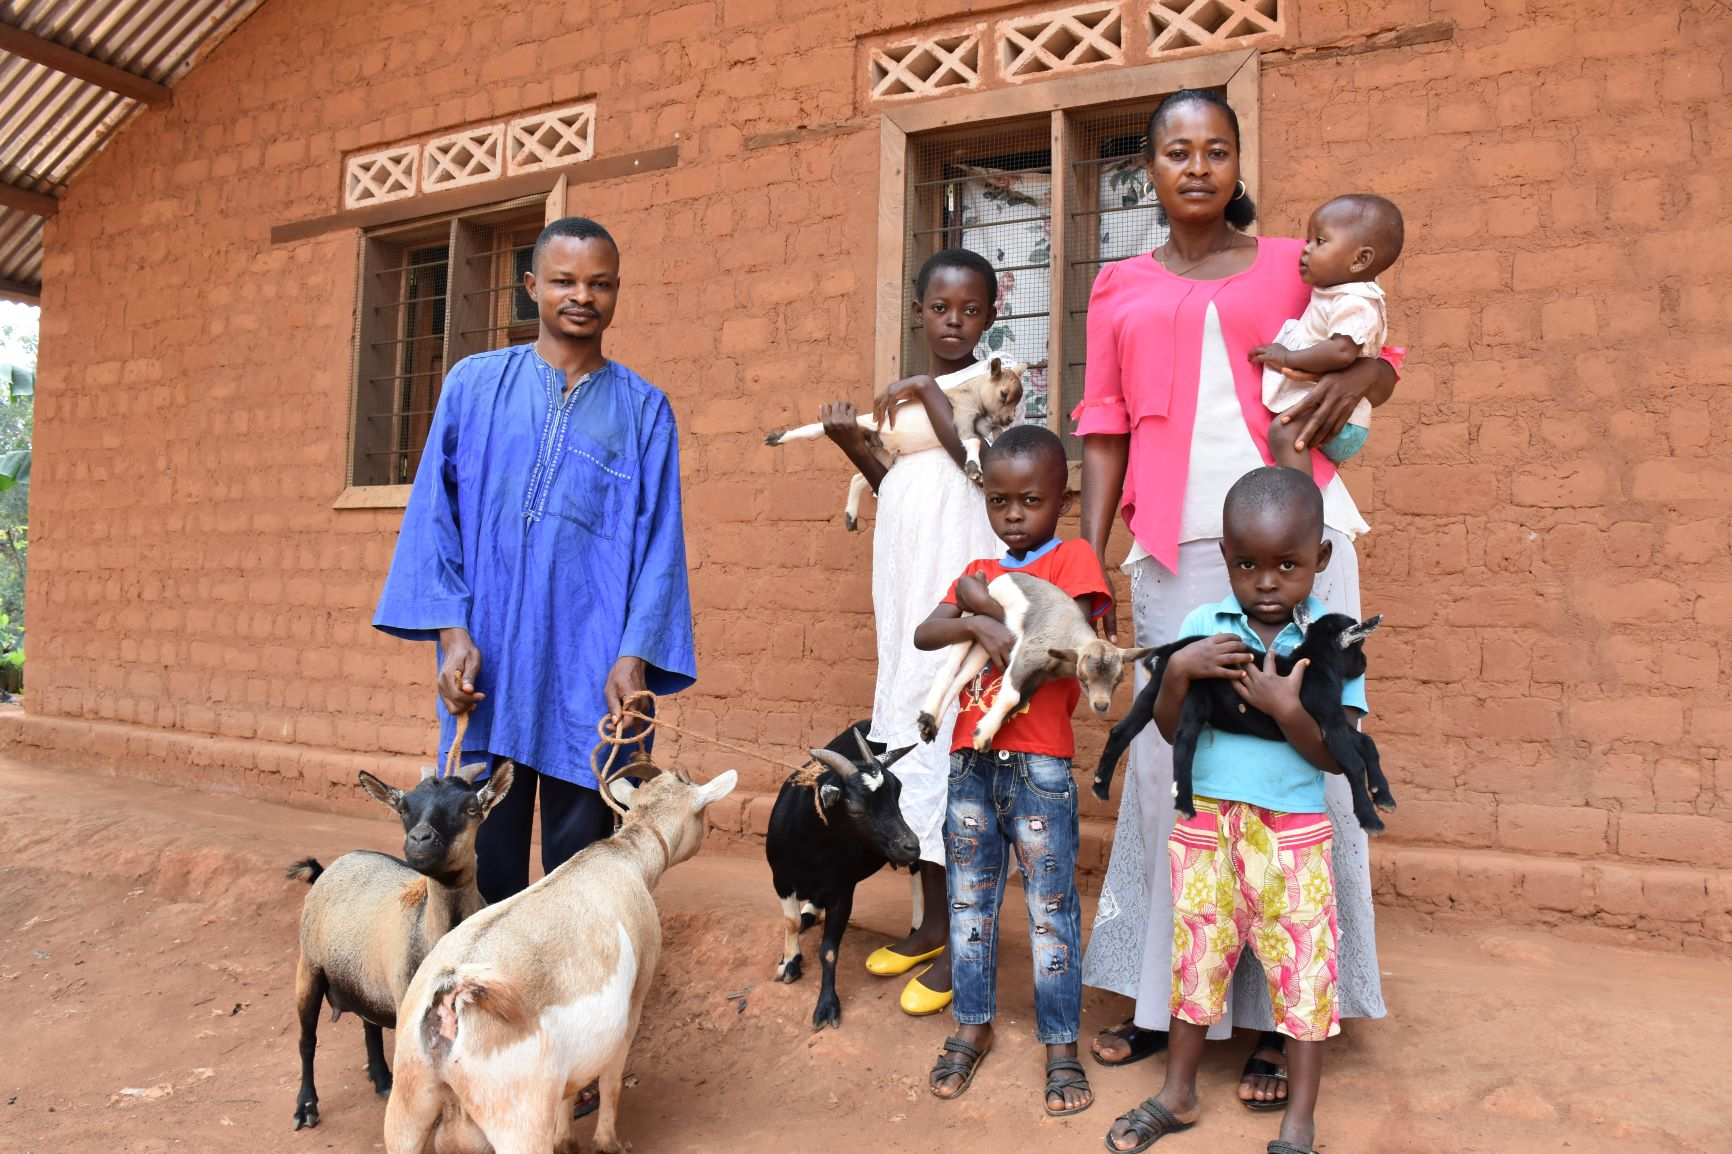 Donnel's family with their goats